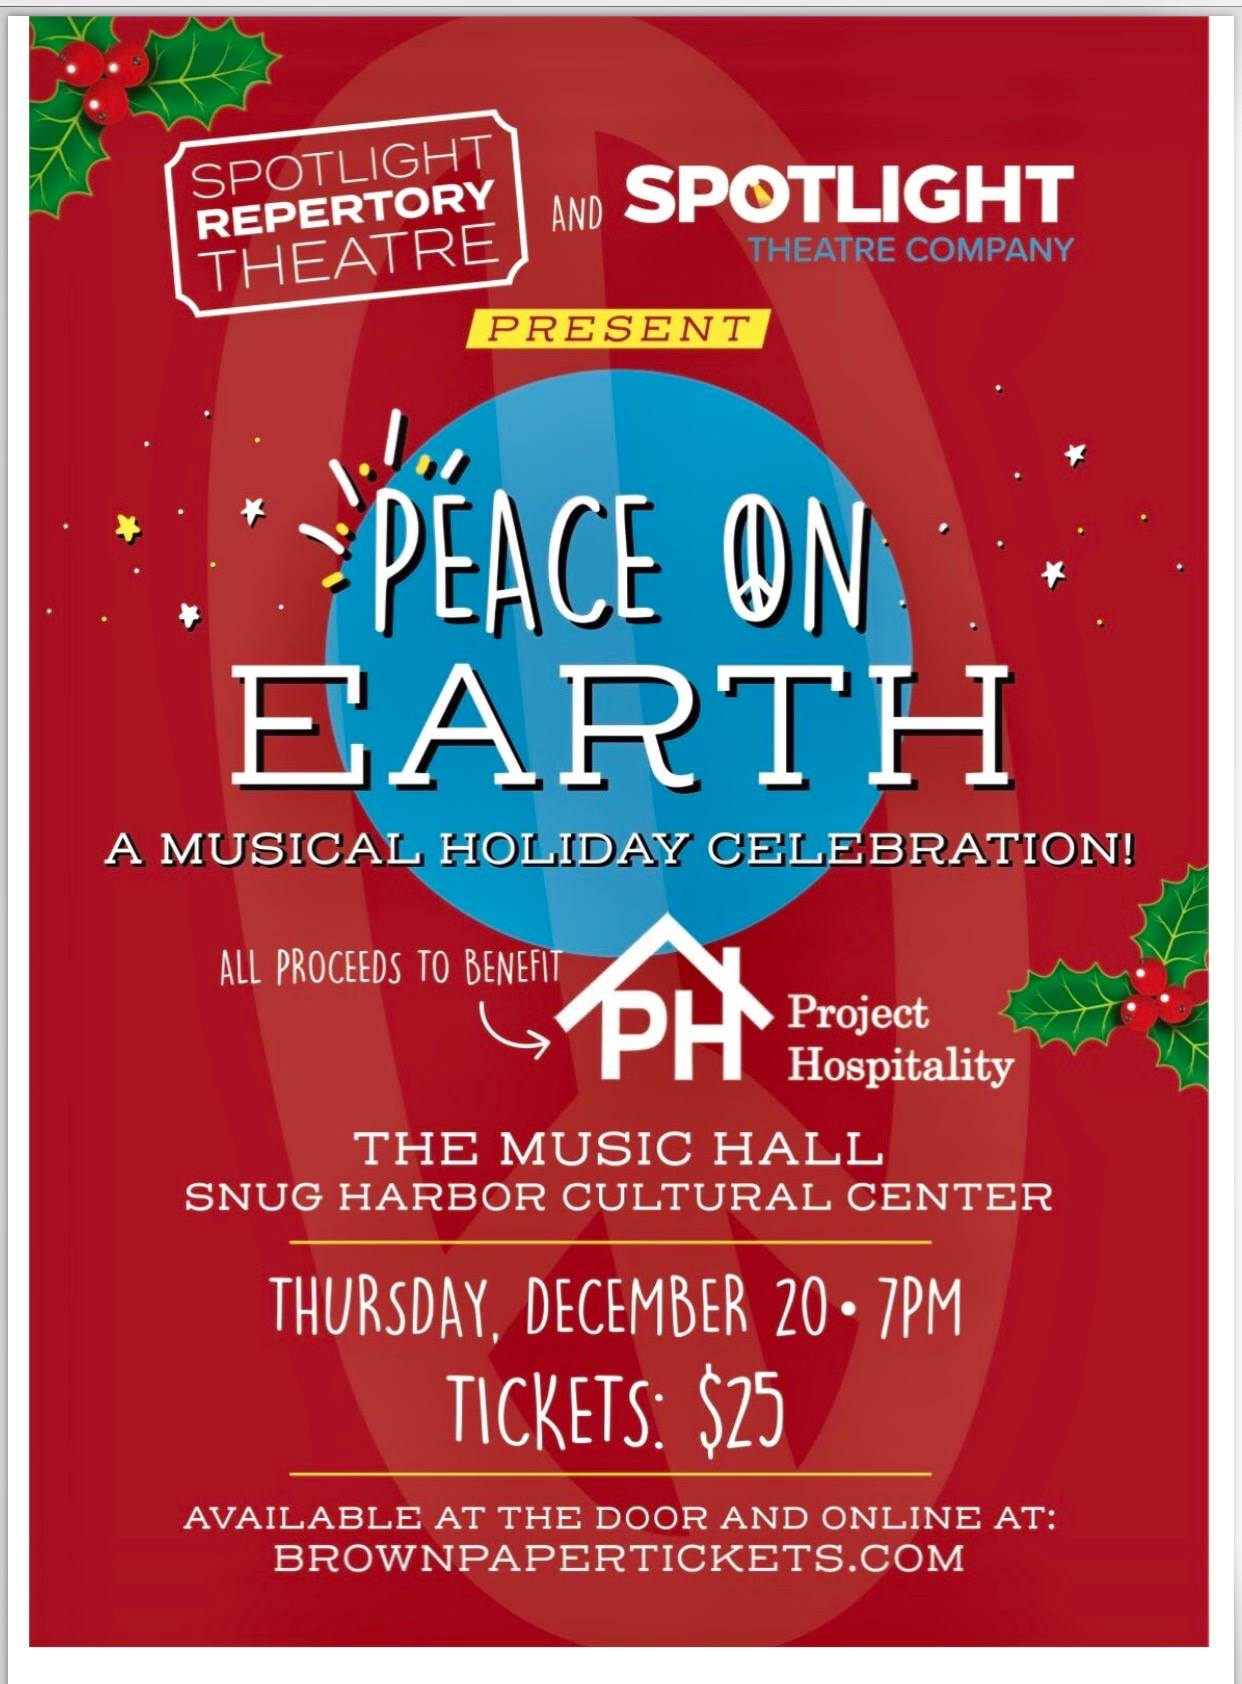 Spotlight Theatre Company Presents: Peace on Earth